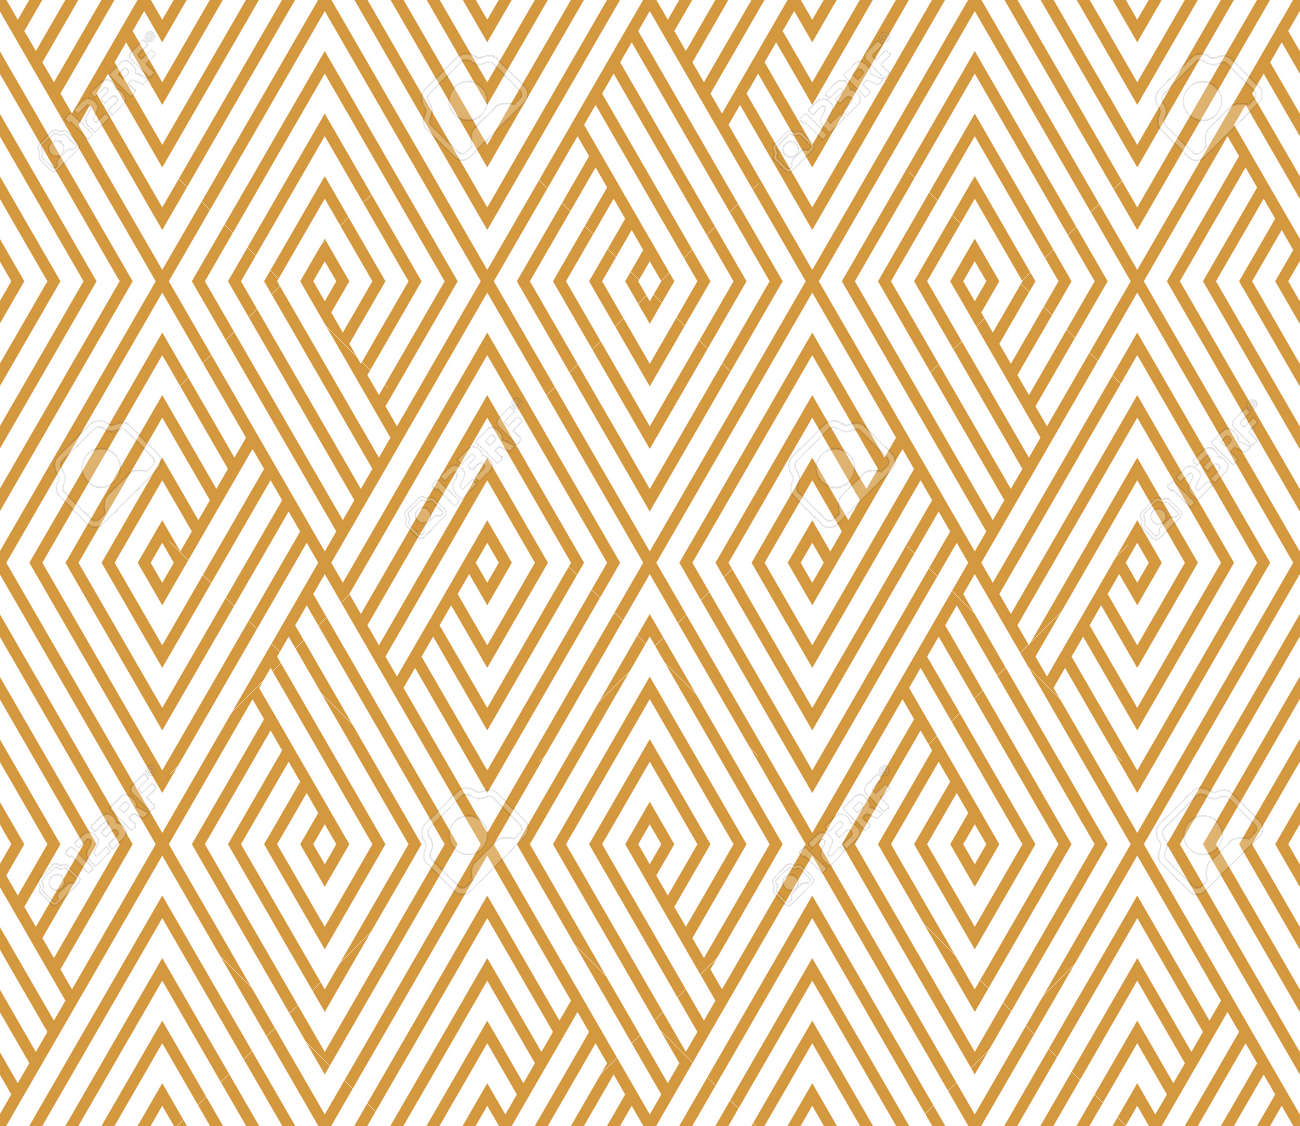 Abstract geometric pattern with stripes, lines. Seamless vector background. White and gold ornament. Simple lattice graphic design - 167831947